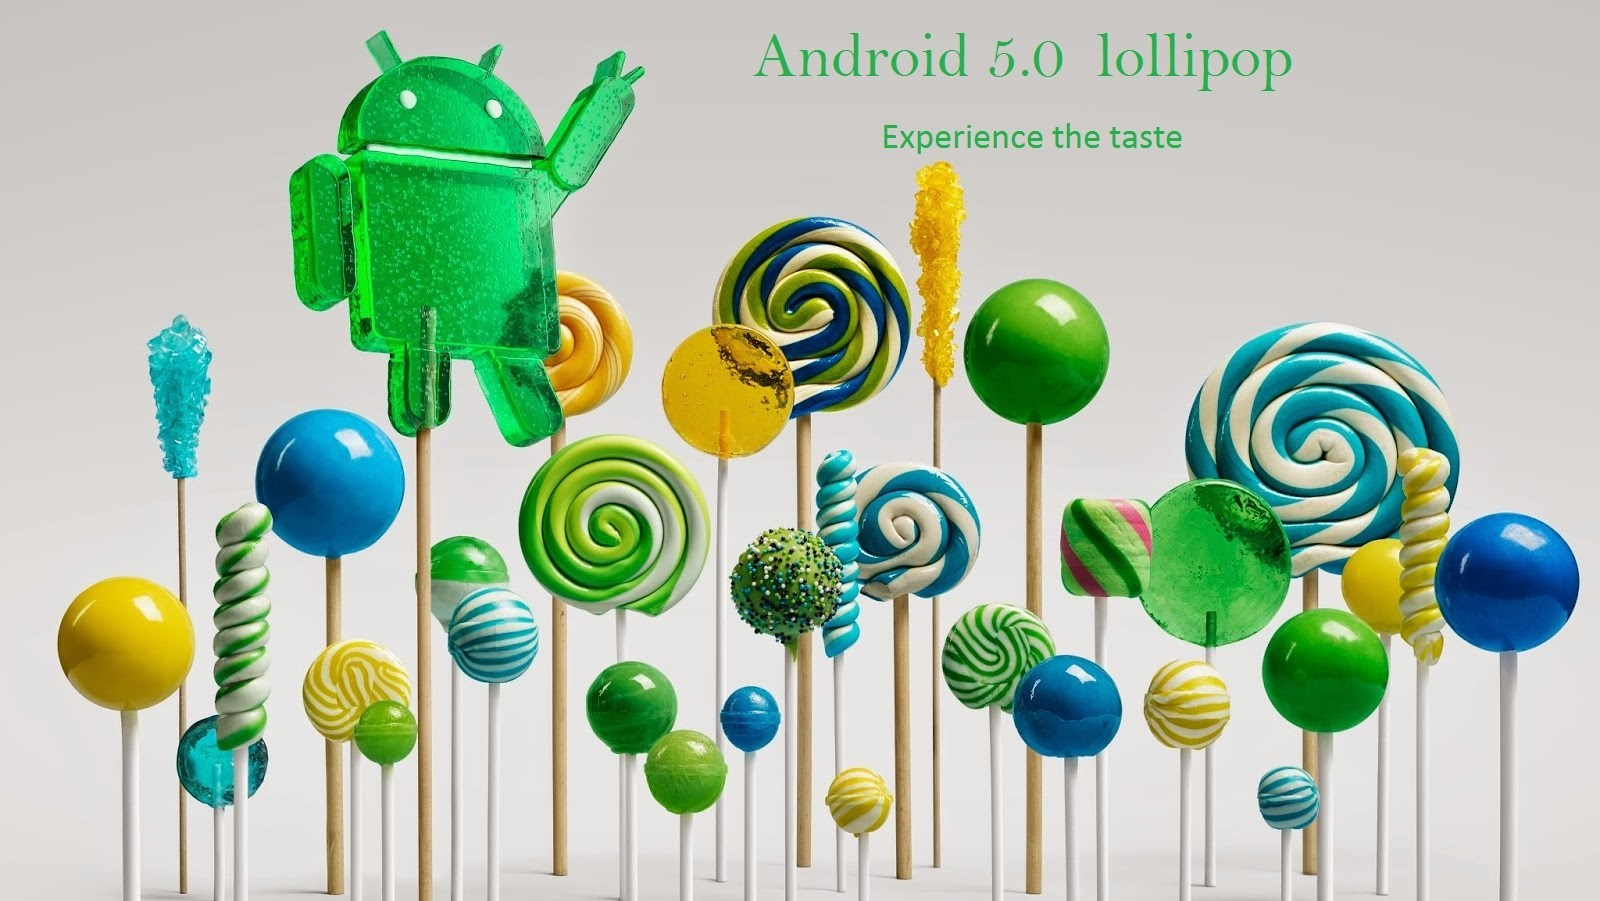 Android lollipop 5.0 - Now downloadable for the Nexus line Up